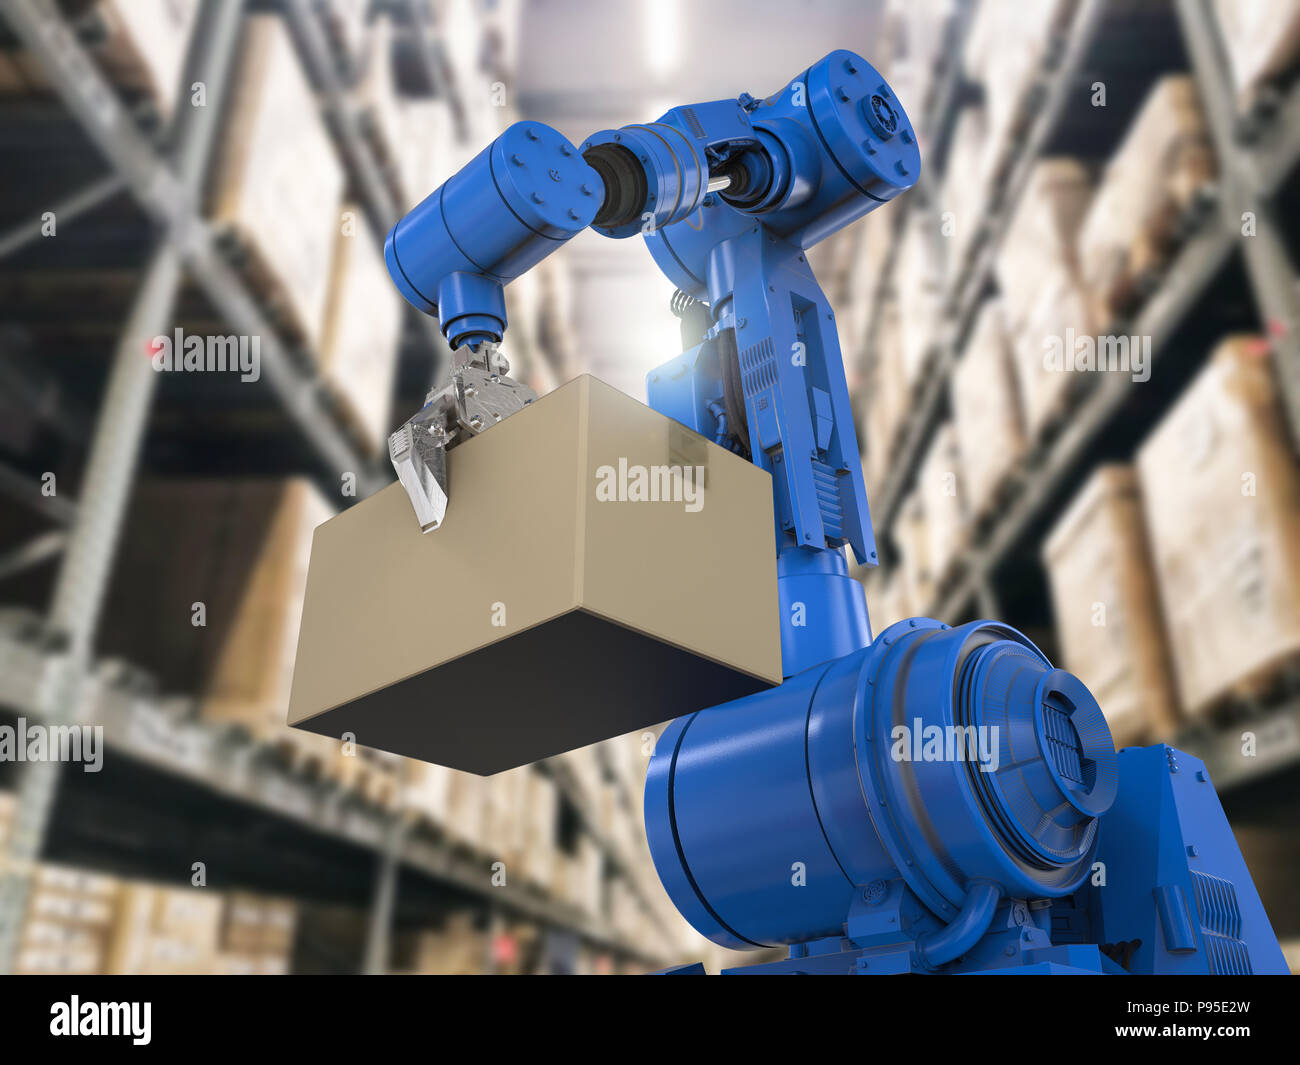 Robotic Arm Stock Photos & Robotic Arm Stock Images - Alamy